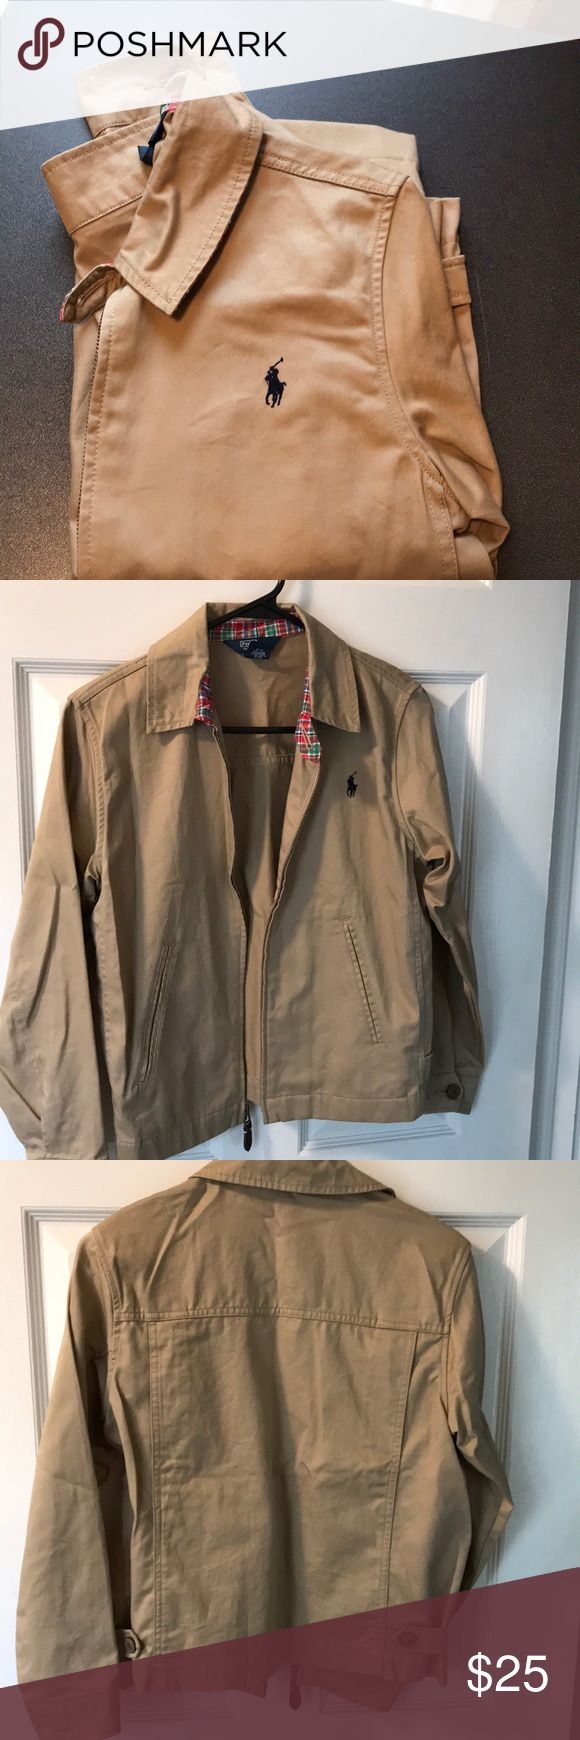 Boys Polo Jacket Khaki cotton lightweight jacket.  Perfect for spring.  Worn a few times to church.  Fits more like 10/12. Polo by Ralph Lauren Jackets & Coats